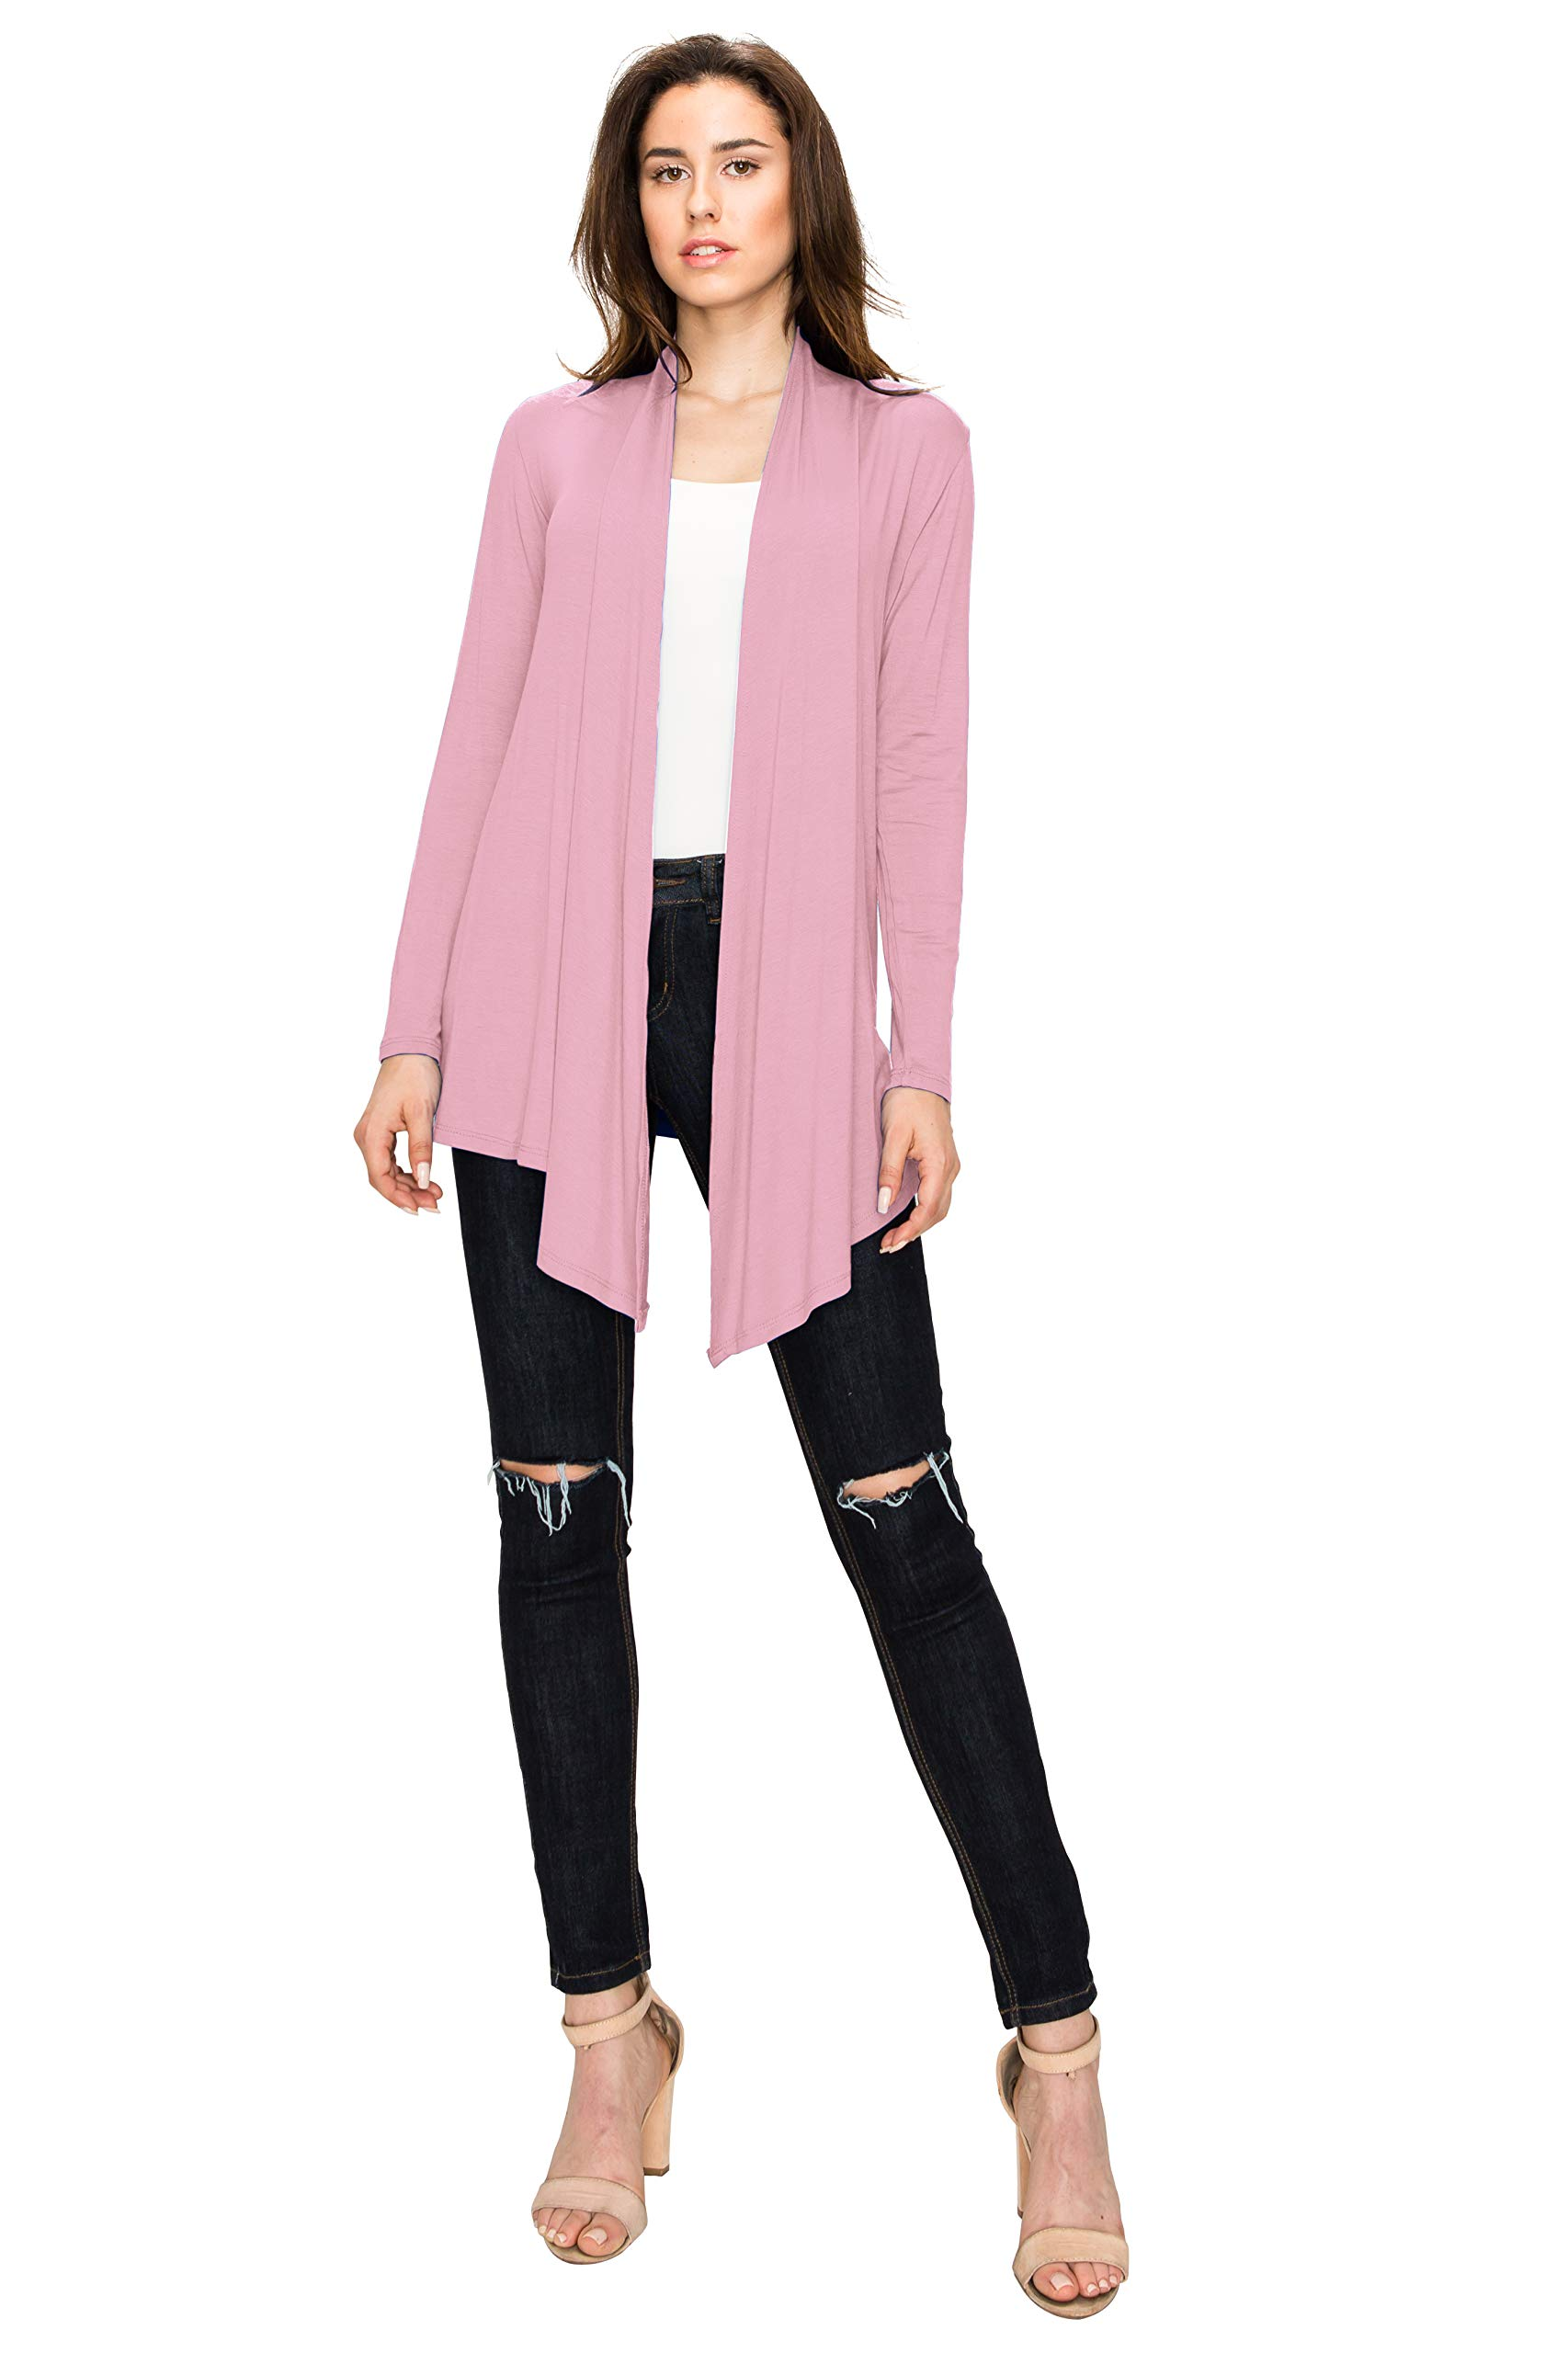 WSK850 Womens Draped Open- Front Cardigan XXL Pink by Lock and Love (Image #2)